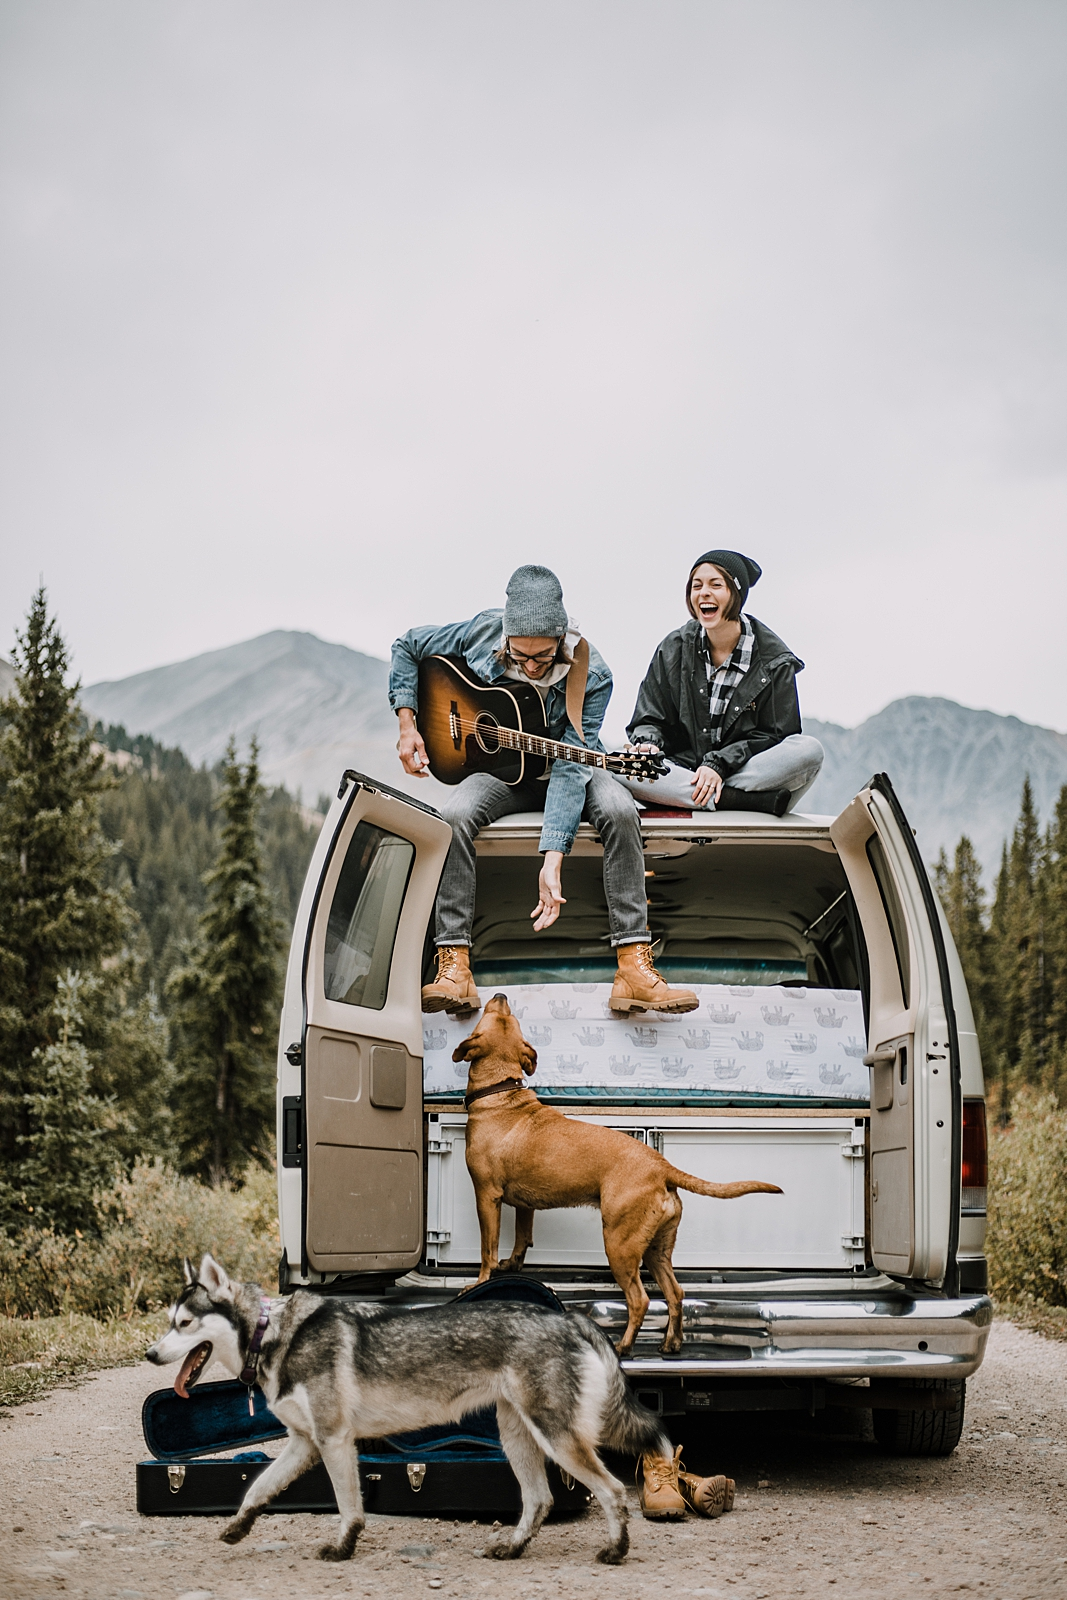 couple living in van with dogs, hiking mayflower gulch leadville and copper colorado, off road jeeping to mayflower gulch, sunrise at mayflower gulch, leadville wedding photographer, mountain vanlife